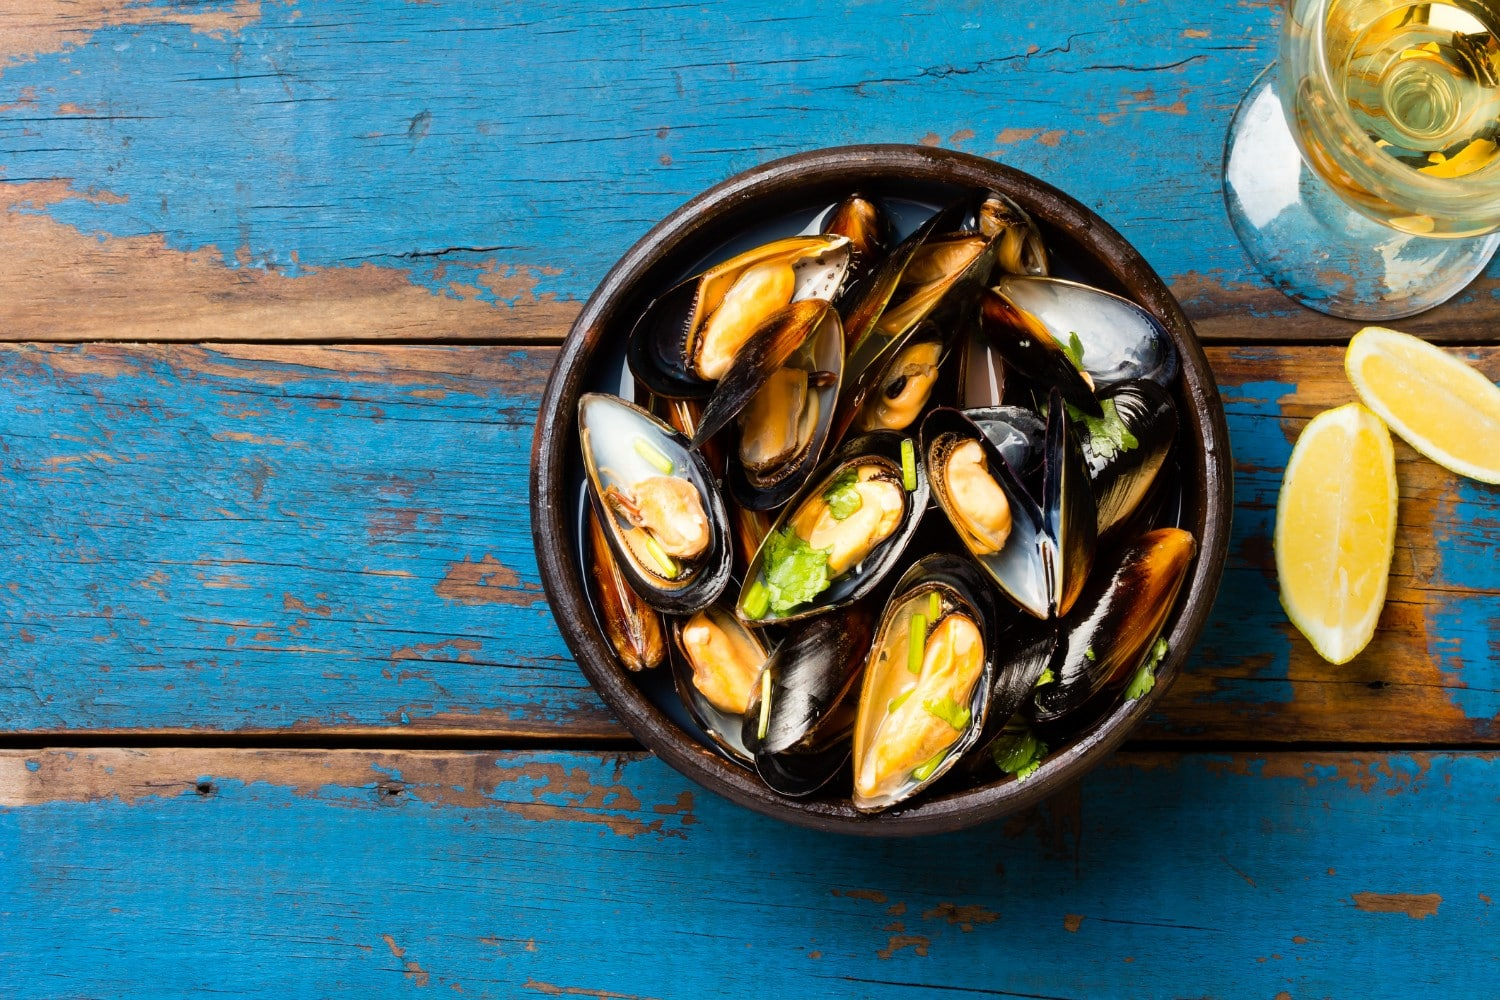 Bowl of mussels on a blue picnic table